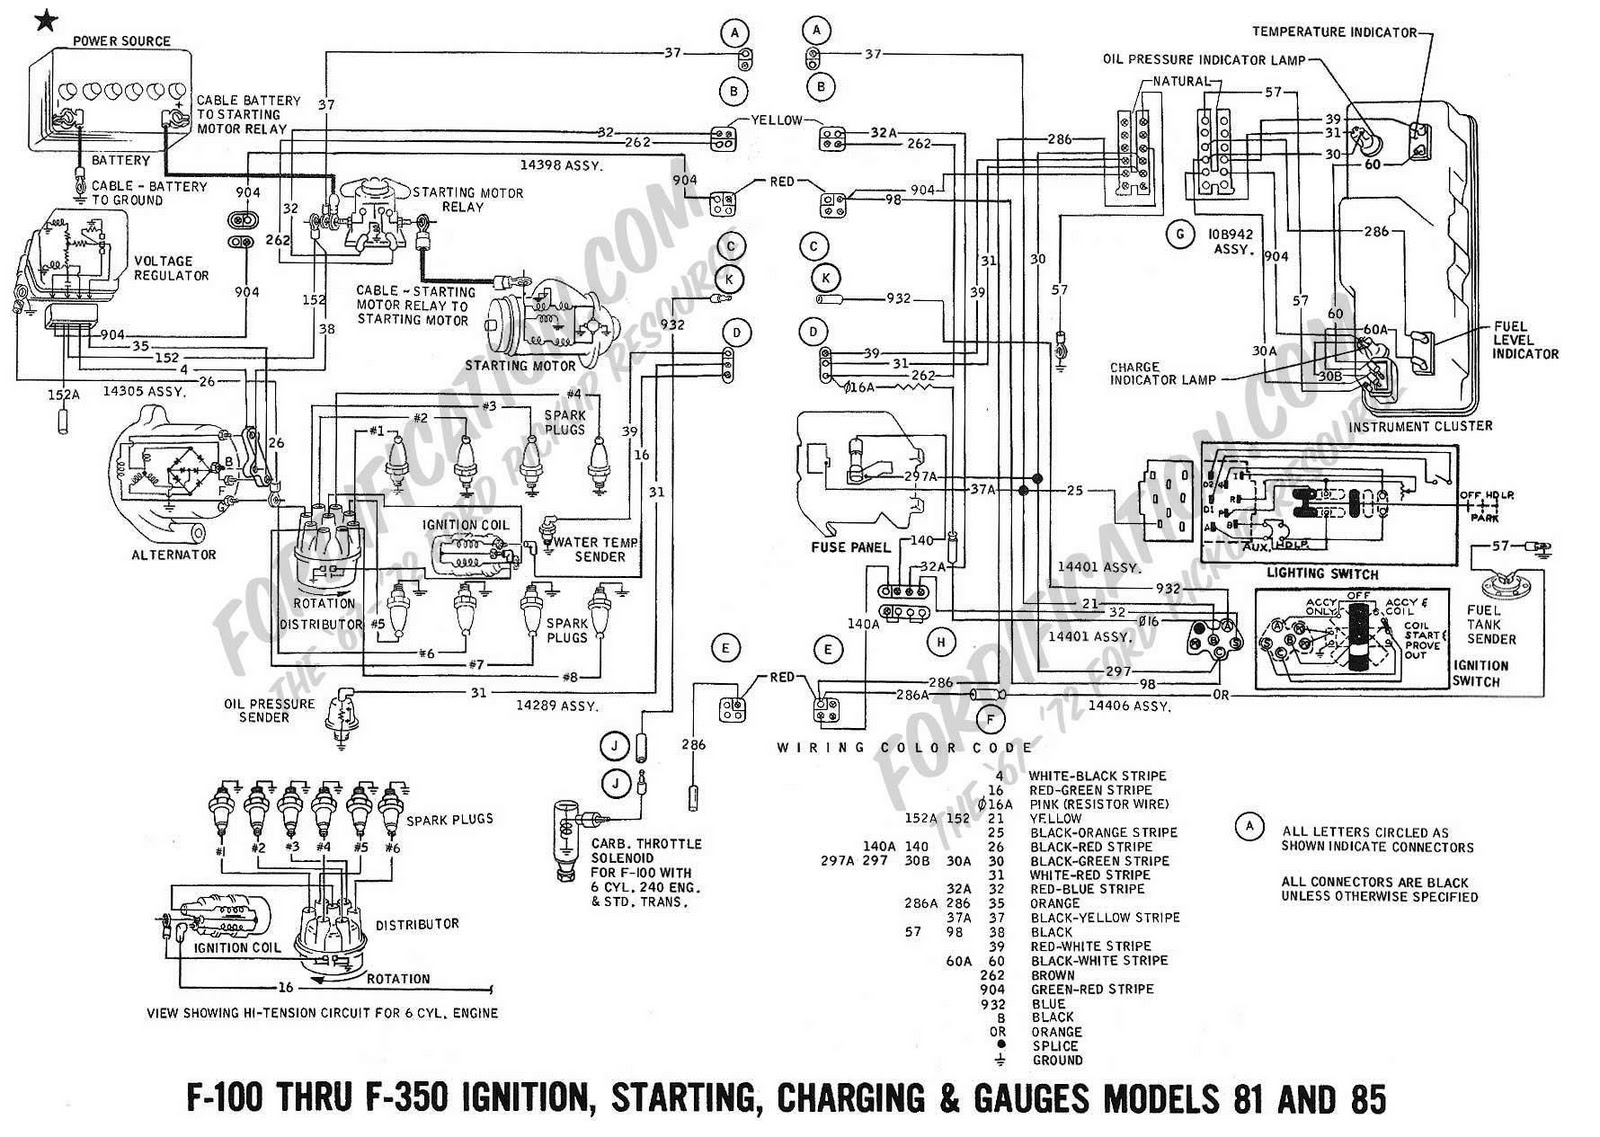 medium resolution of 4 1 haul system diagram wiring schematic wiring diagram schematics boat alternator diagram advantage boats wiring diagram